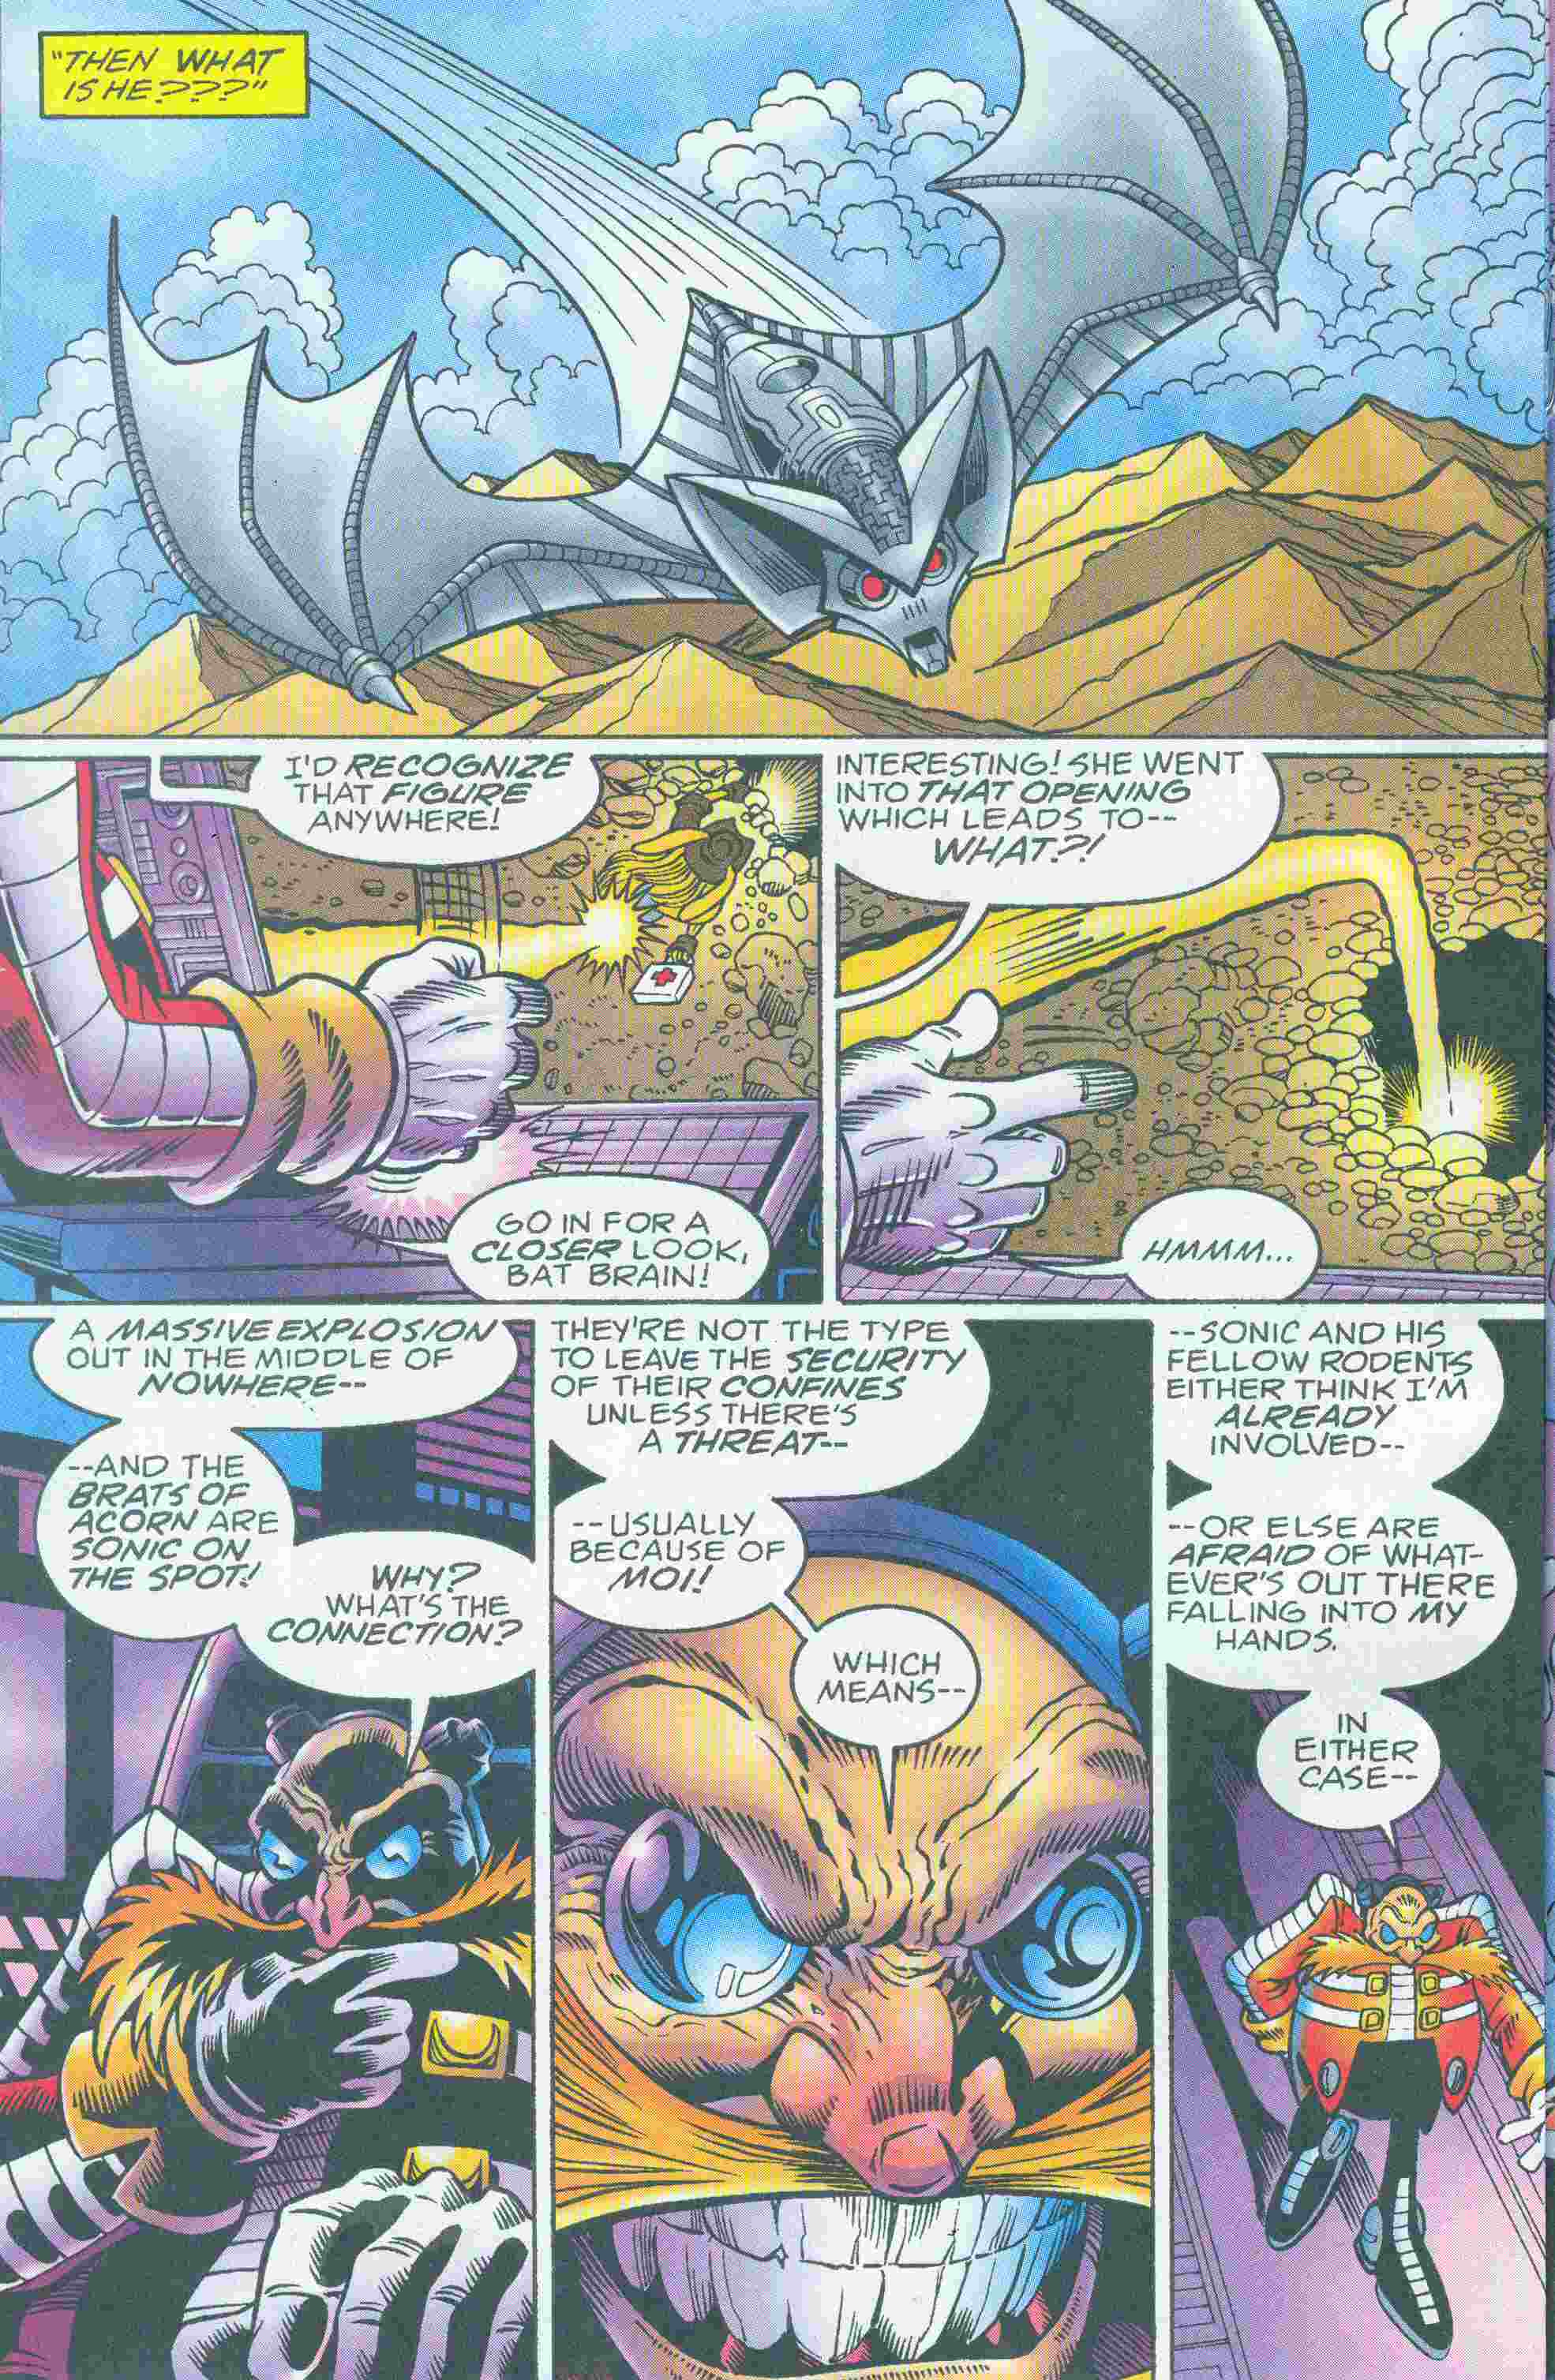 Sonic - Archie Adventure Series May 2005 Page 11